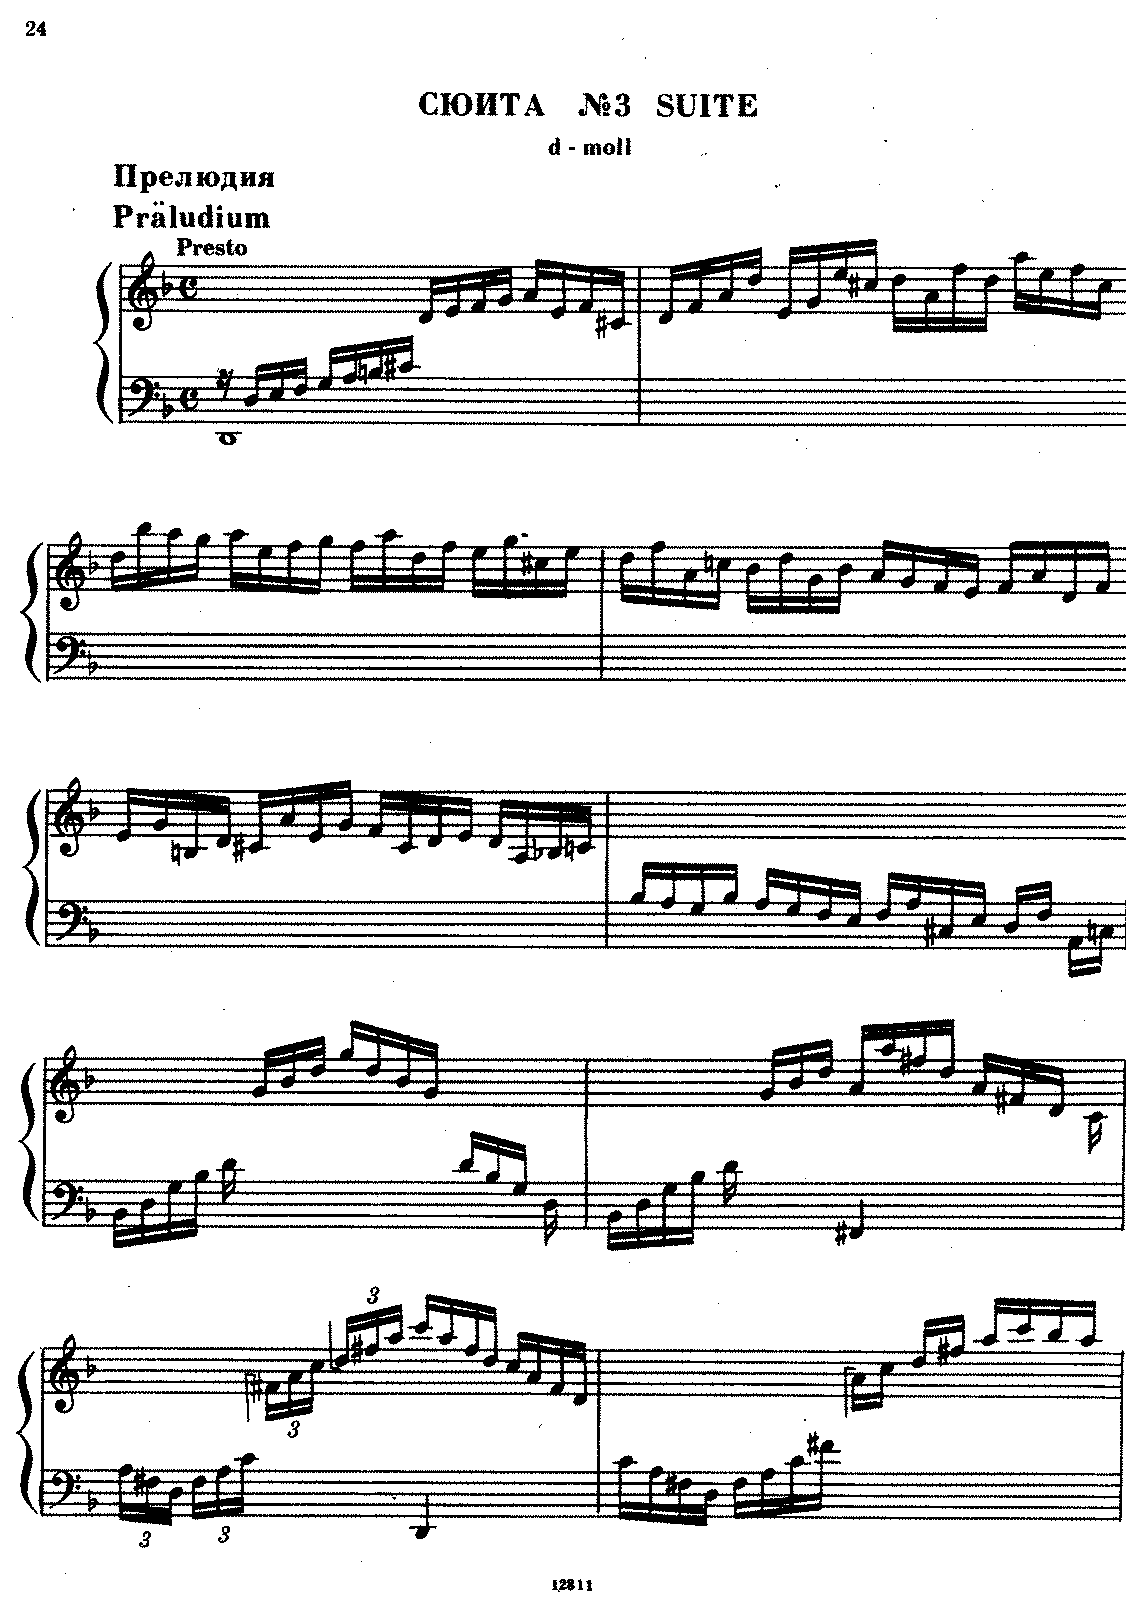 Handel - Suite No 3 in D minor.pdf